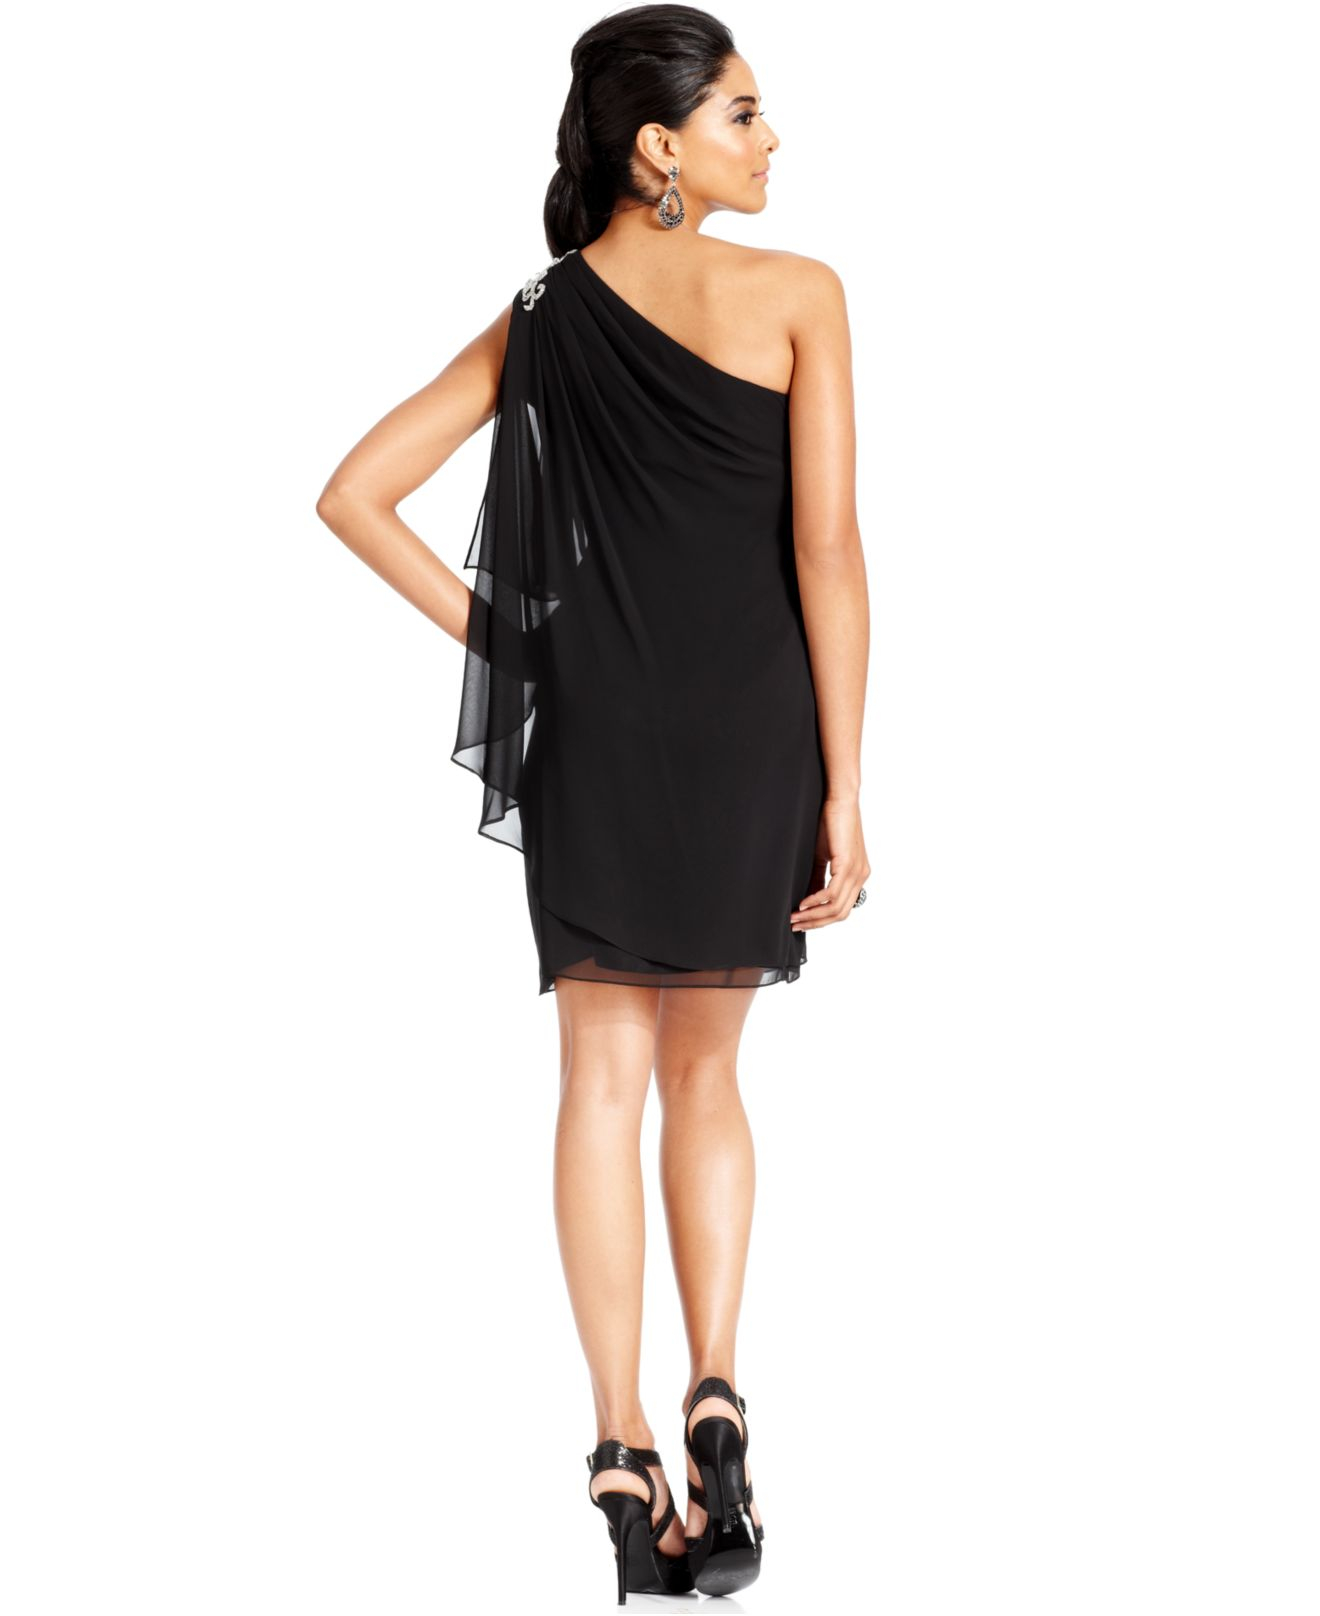 JS Boutique One Shoulder Dresses